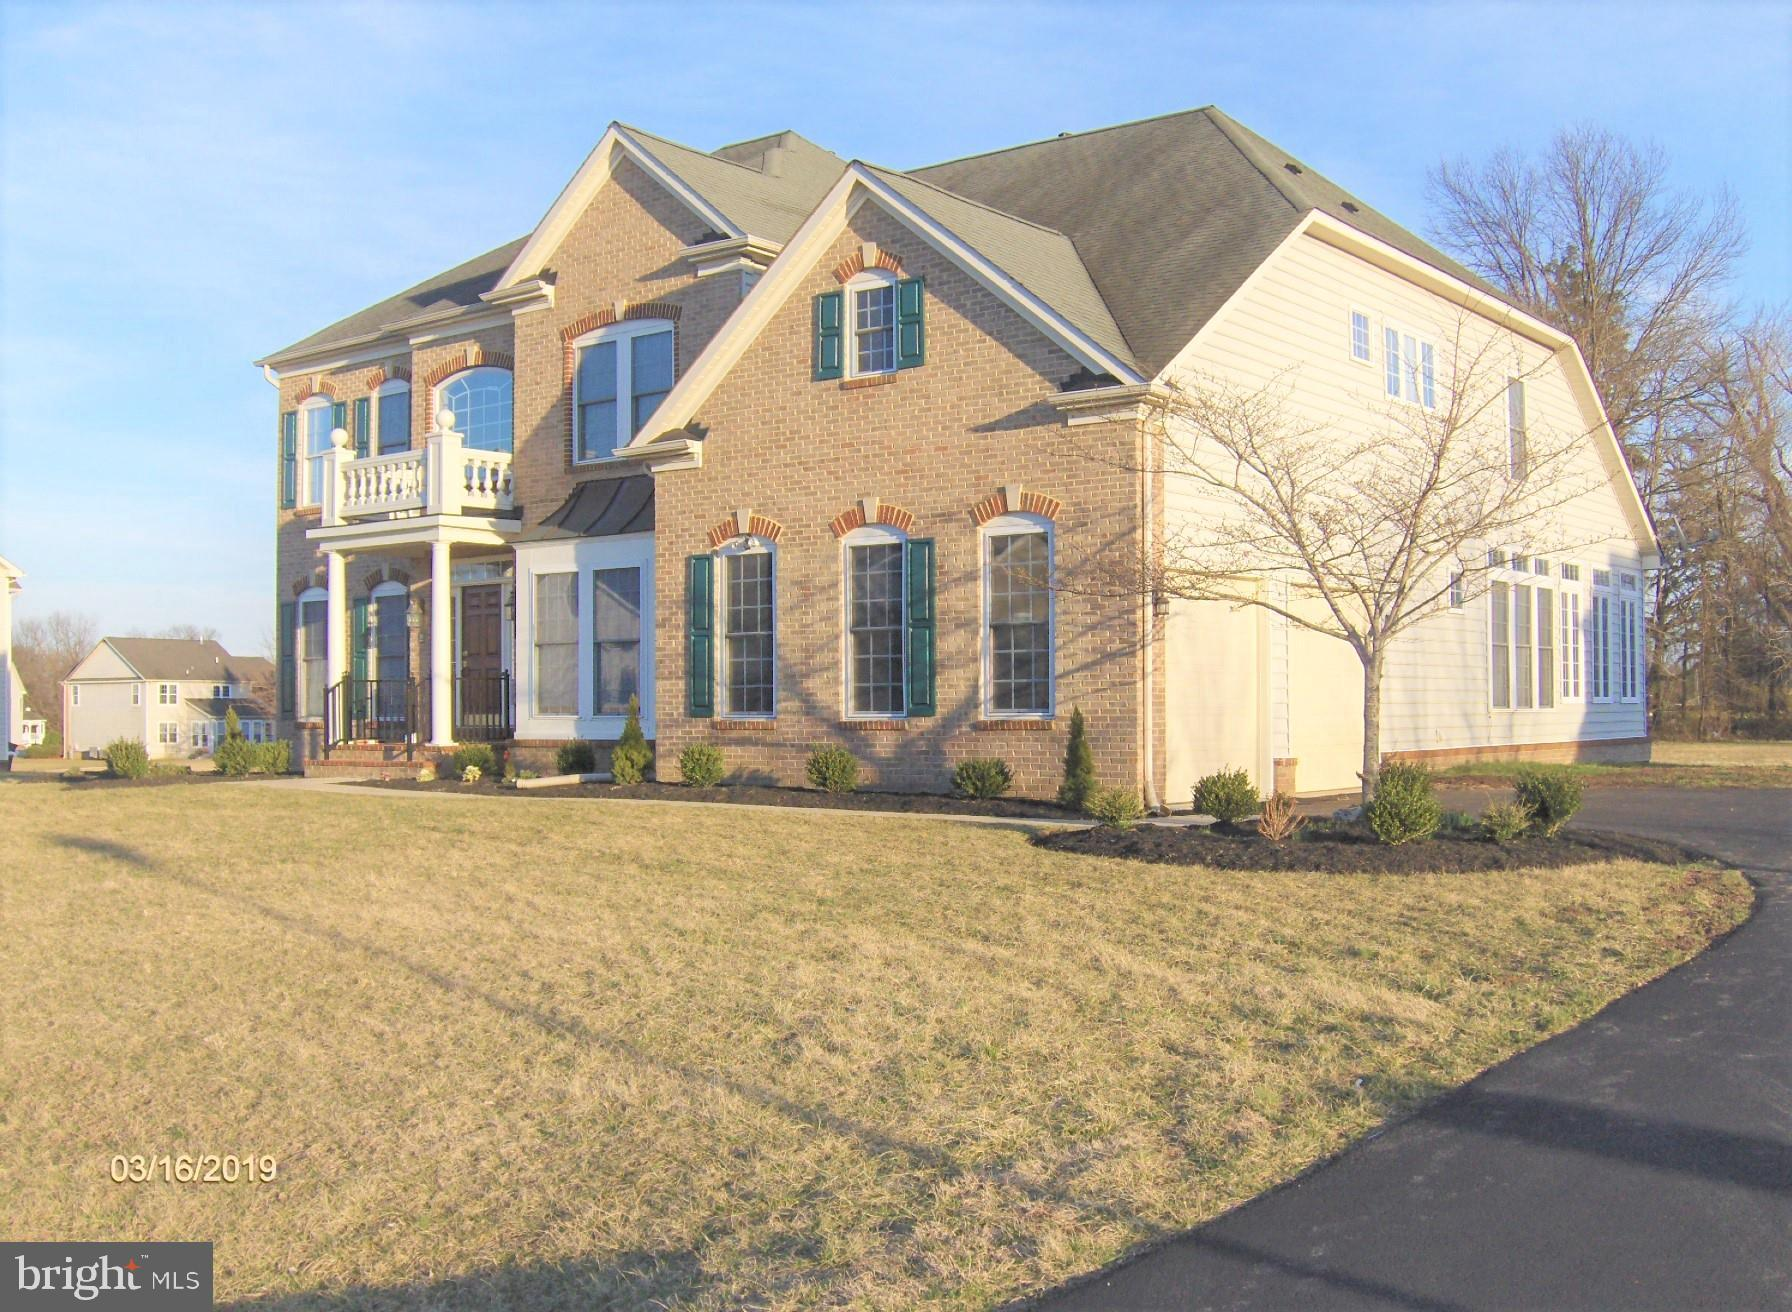 13805 DAWN WHISTLE WAY, BOWIE, MD 20721